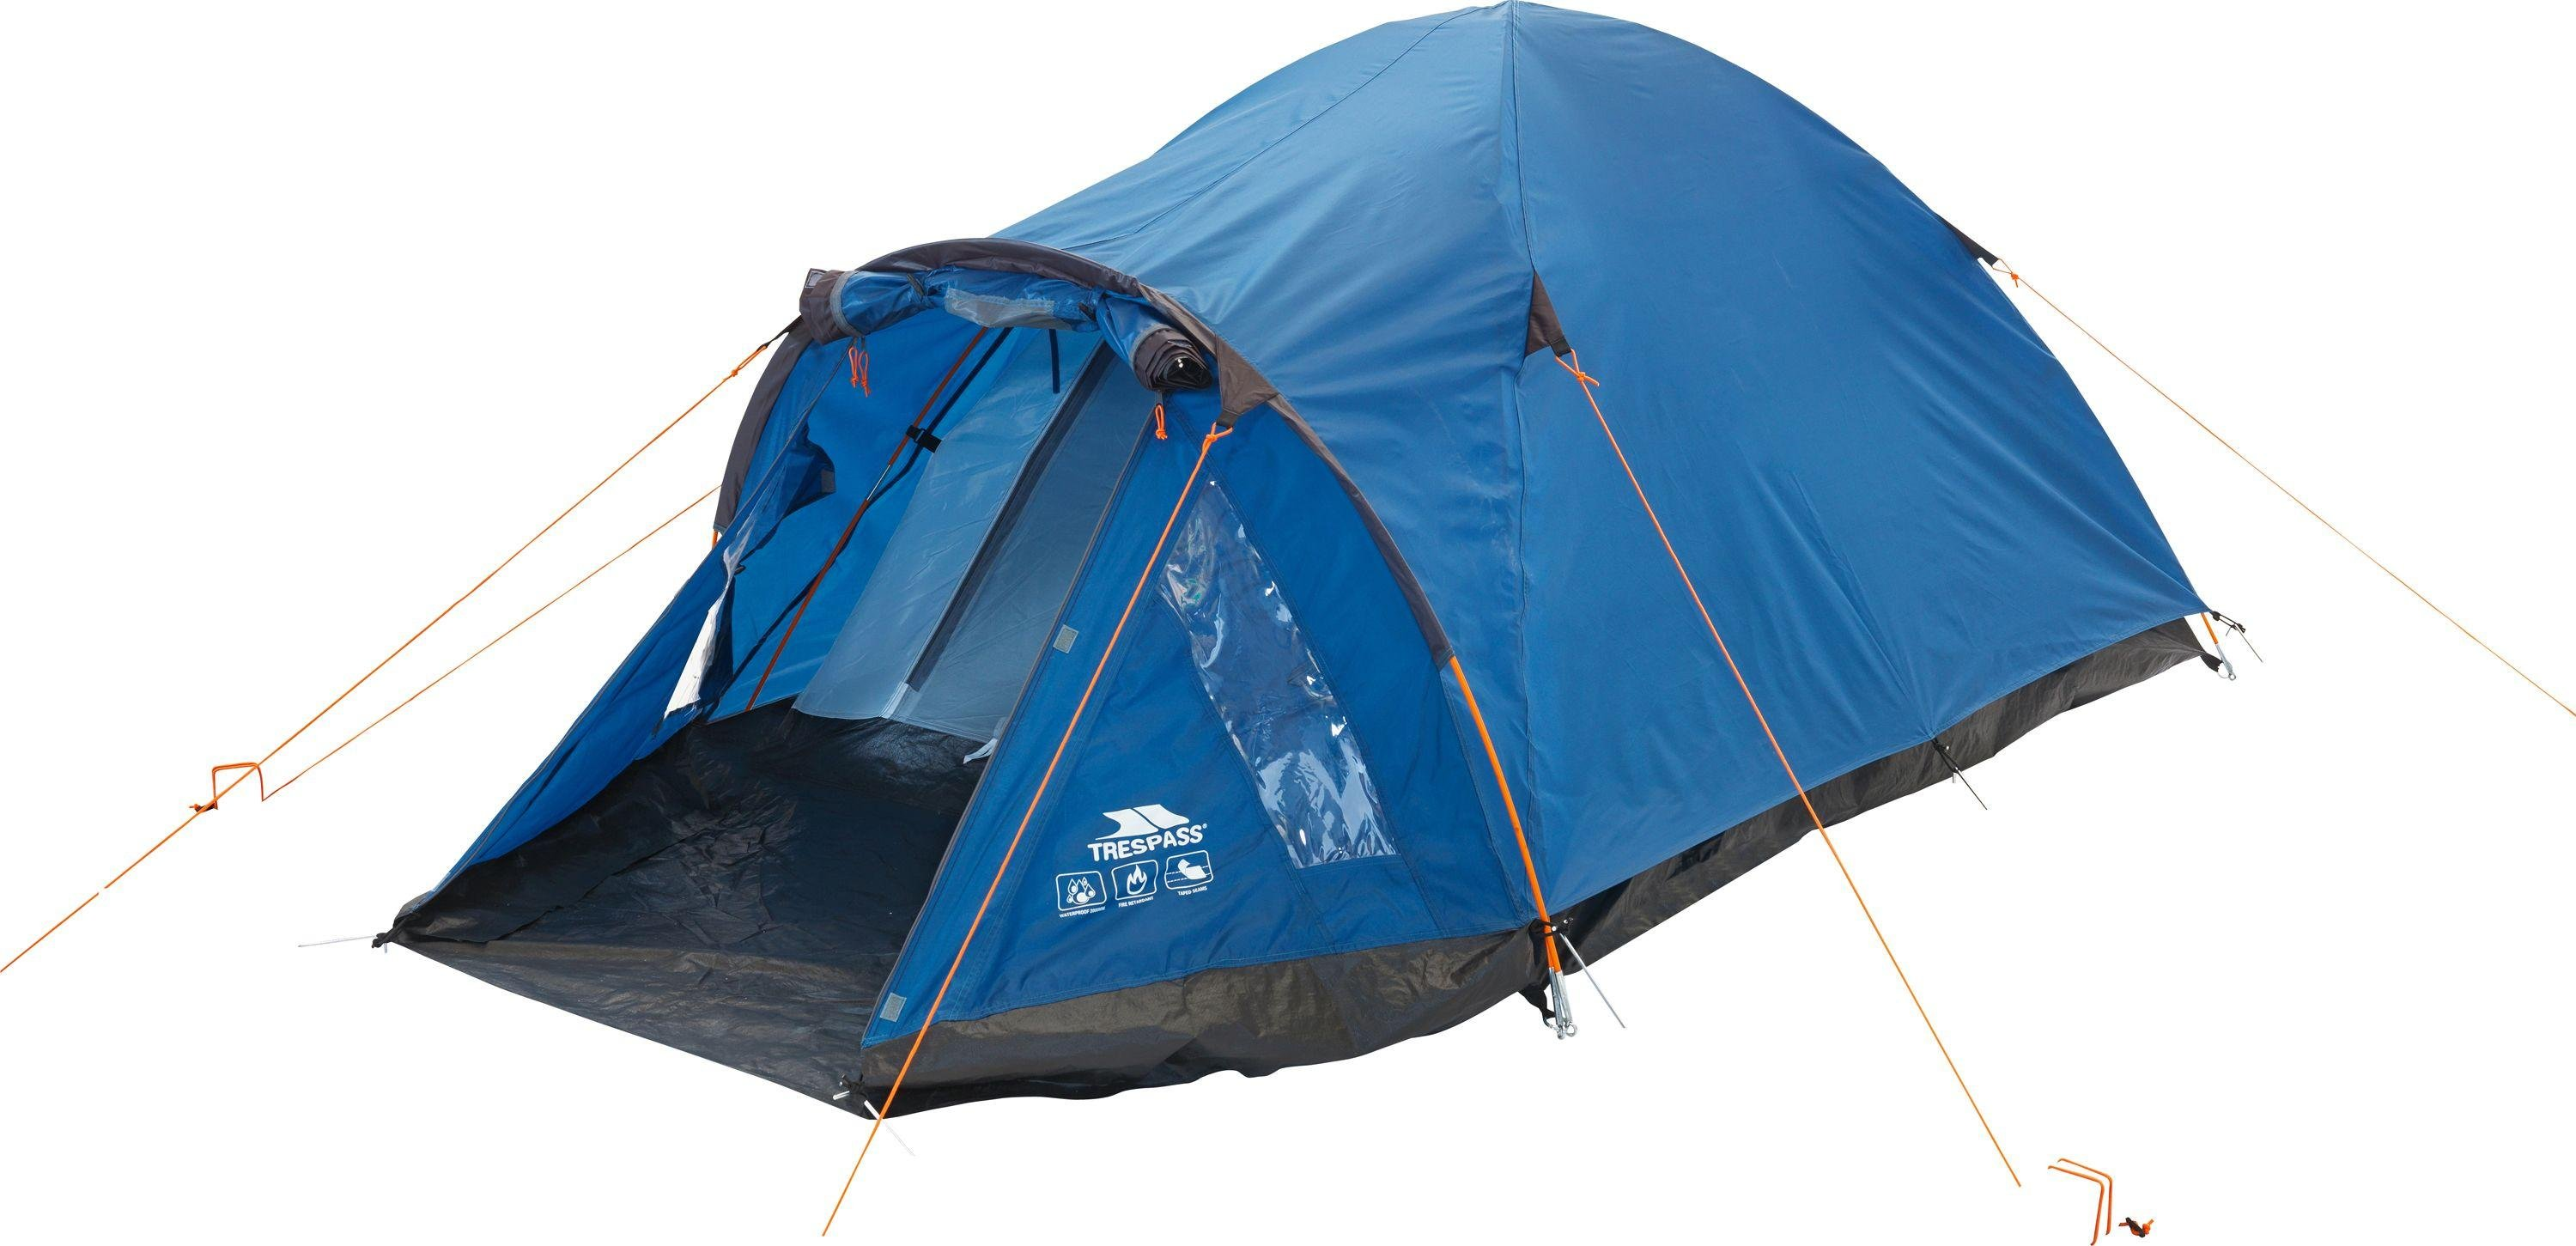 Trespass 2 Man 1 Room Dome Tent  sc 1 st  Argos & Buy Trespass 2 Man 1 Room Dome Tent | Tents | Argos